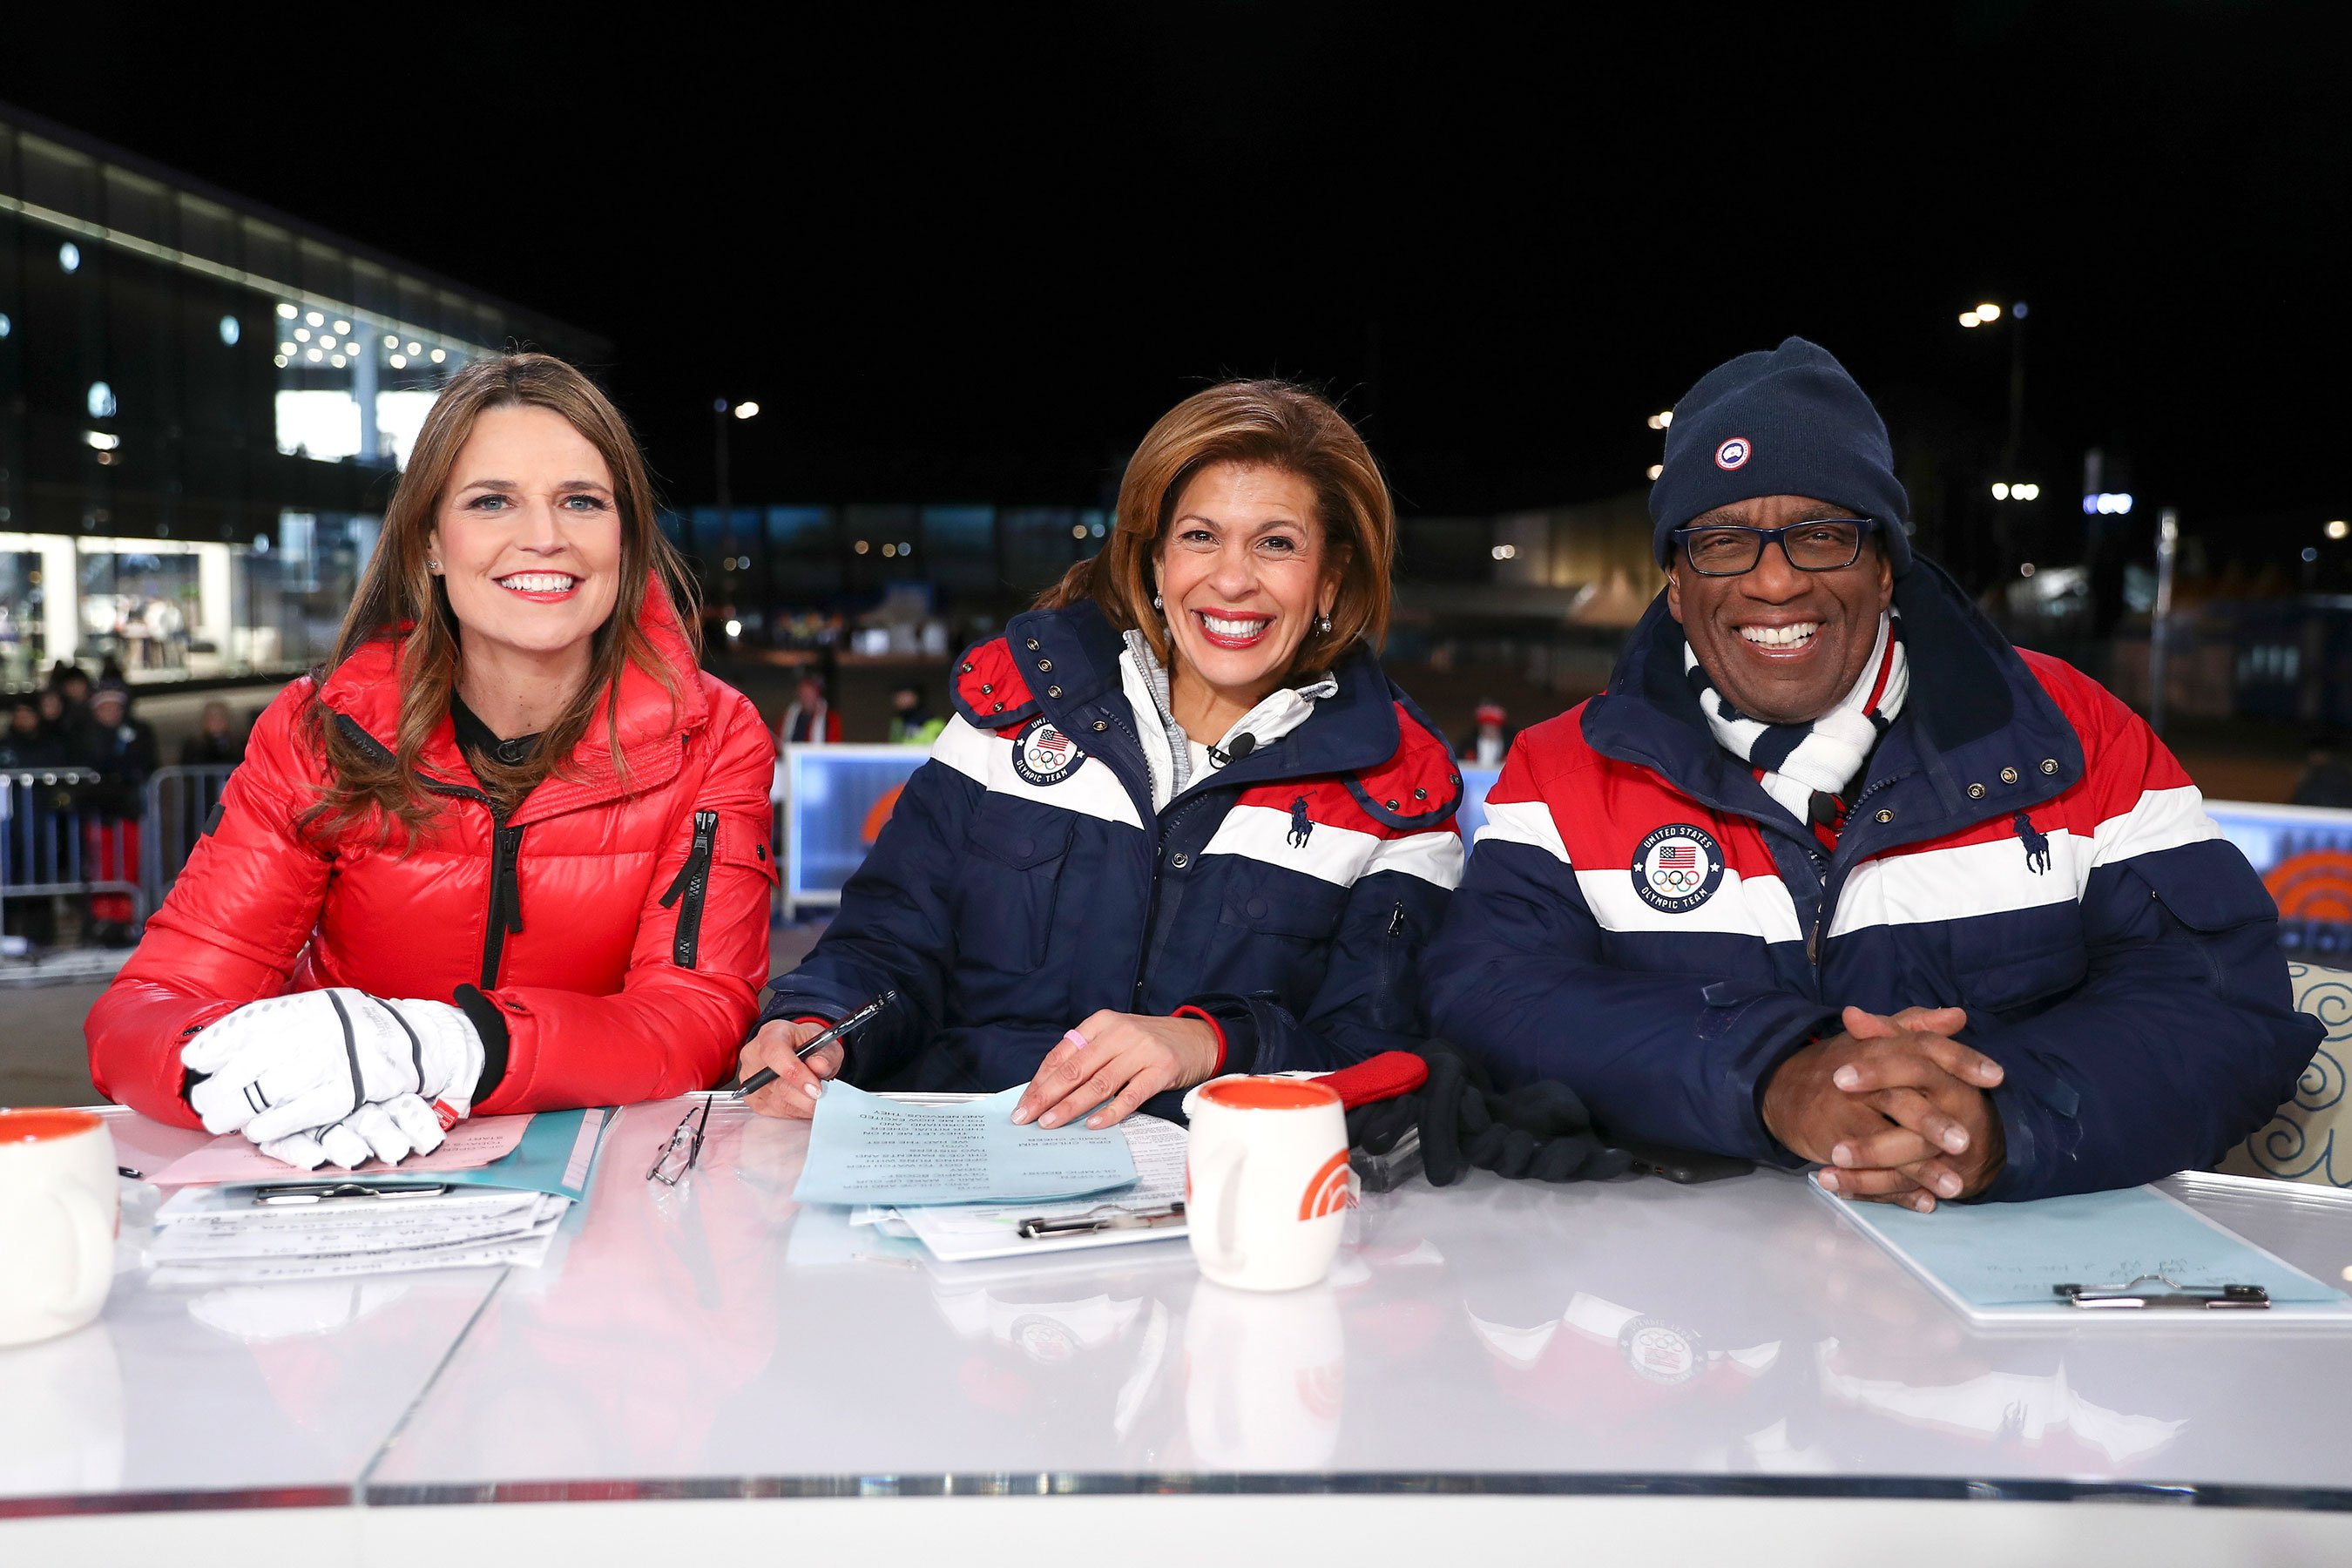 Todayanchors reunite with their families after Olympics in emotional video